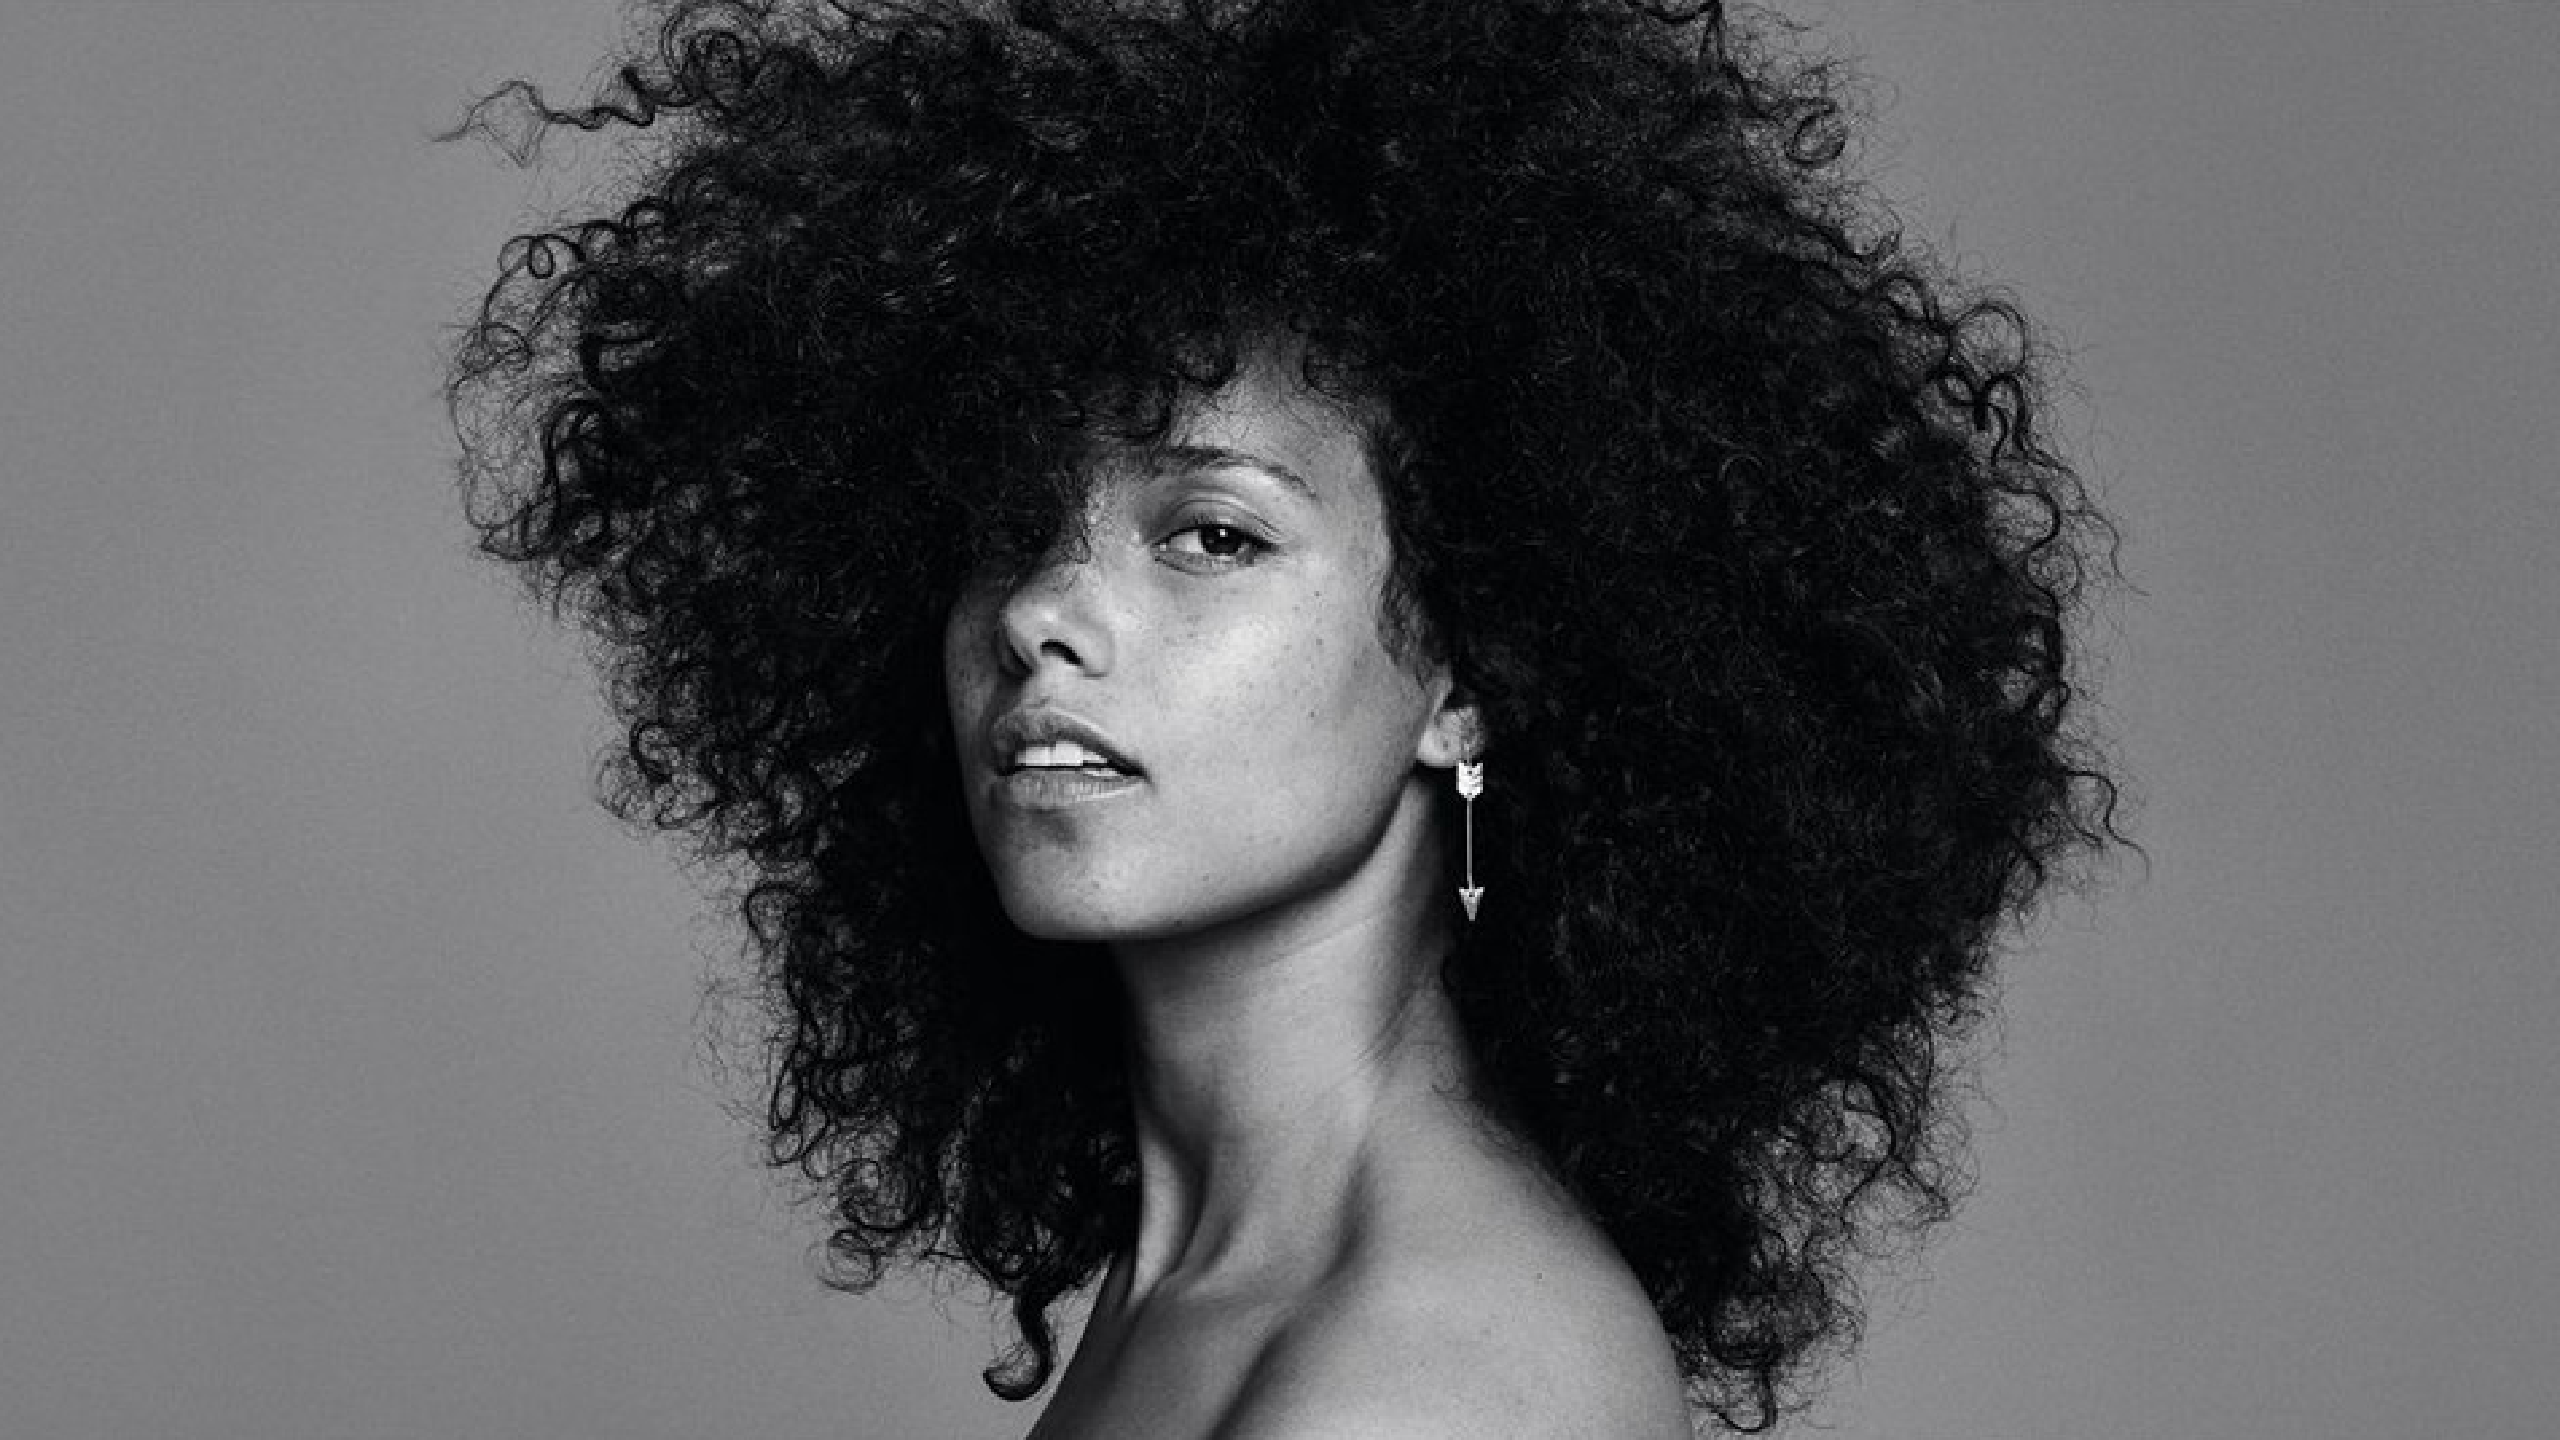 Alicia Keys Tour Dates 2020 Alicia Keys tour dates 2019 2020. Alicia Keys tickets and concerts